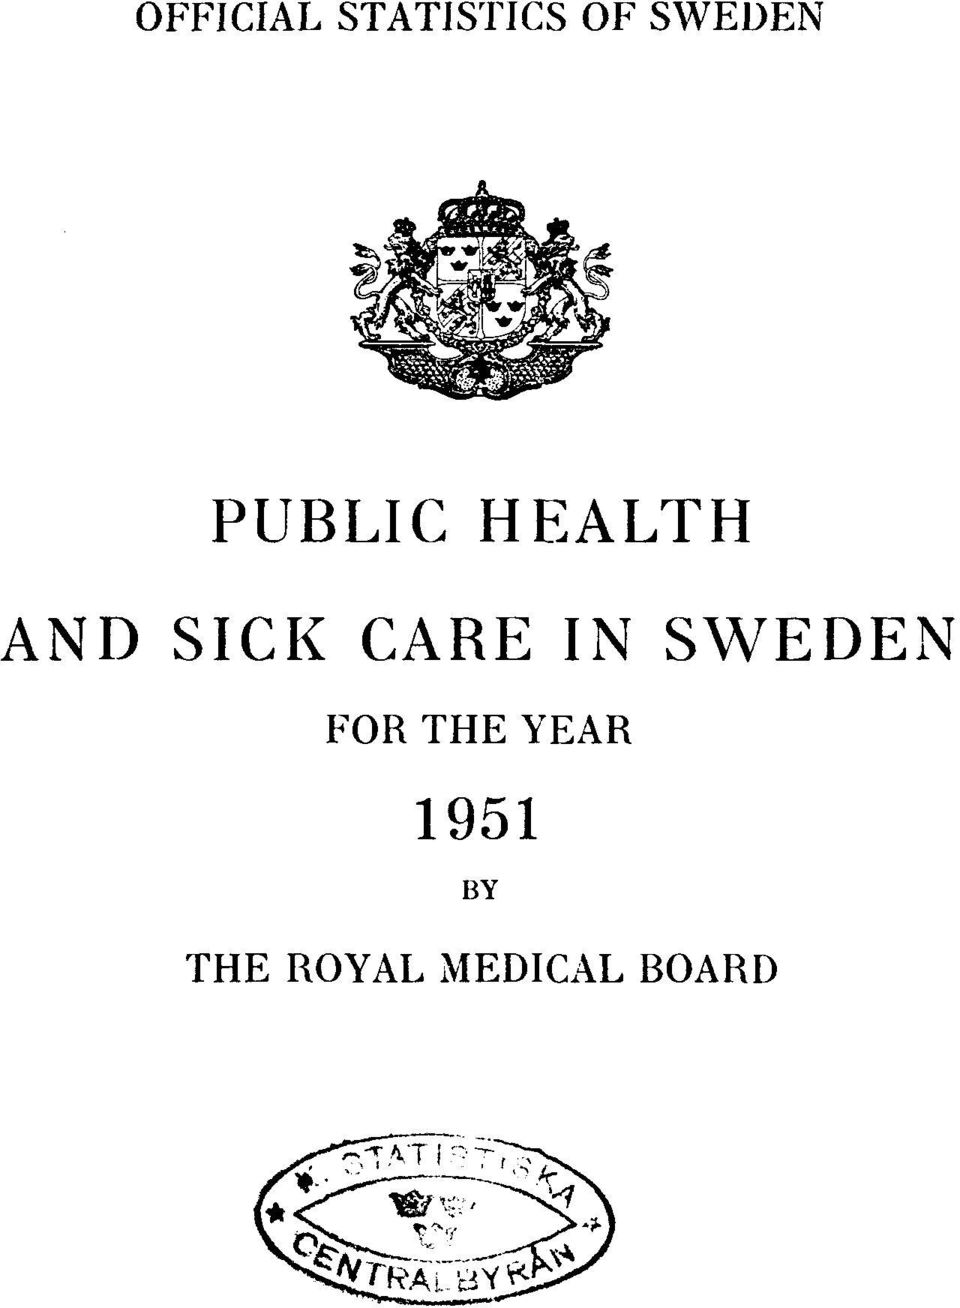 SICK CARE IN SWEDEN FOR THE